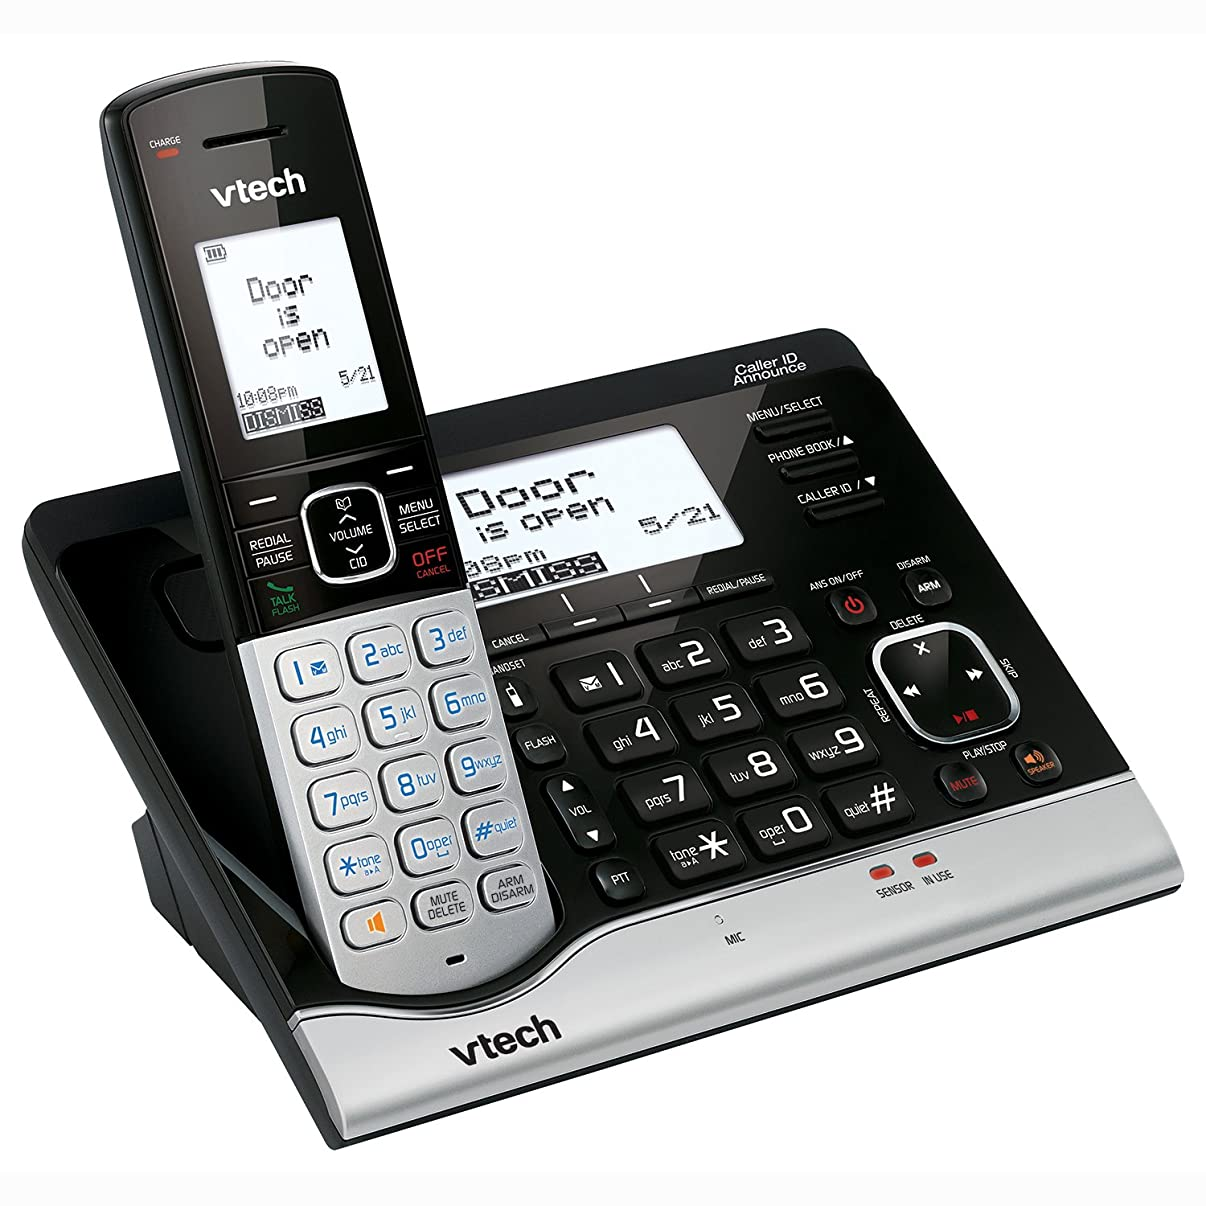 Tech VC7151 Wireless Home Monitoring System with Cordless Telephone and VTech Sensor Compatibility